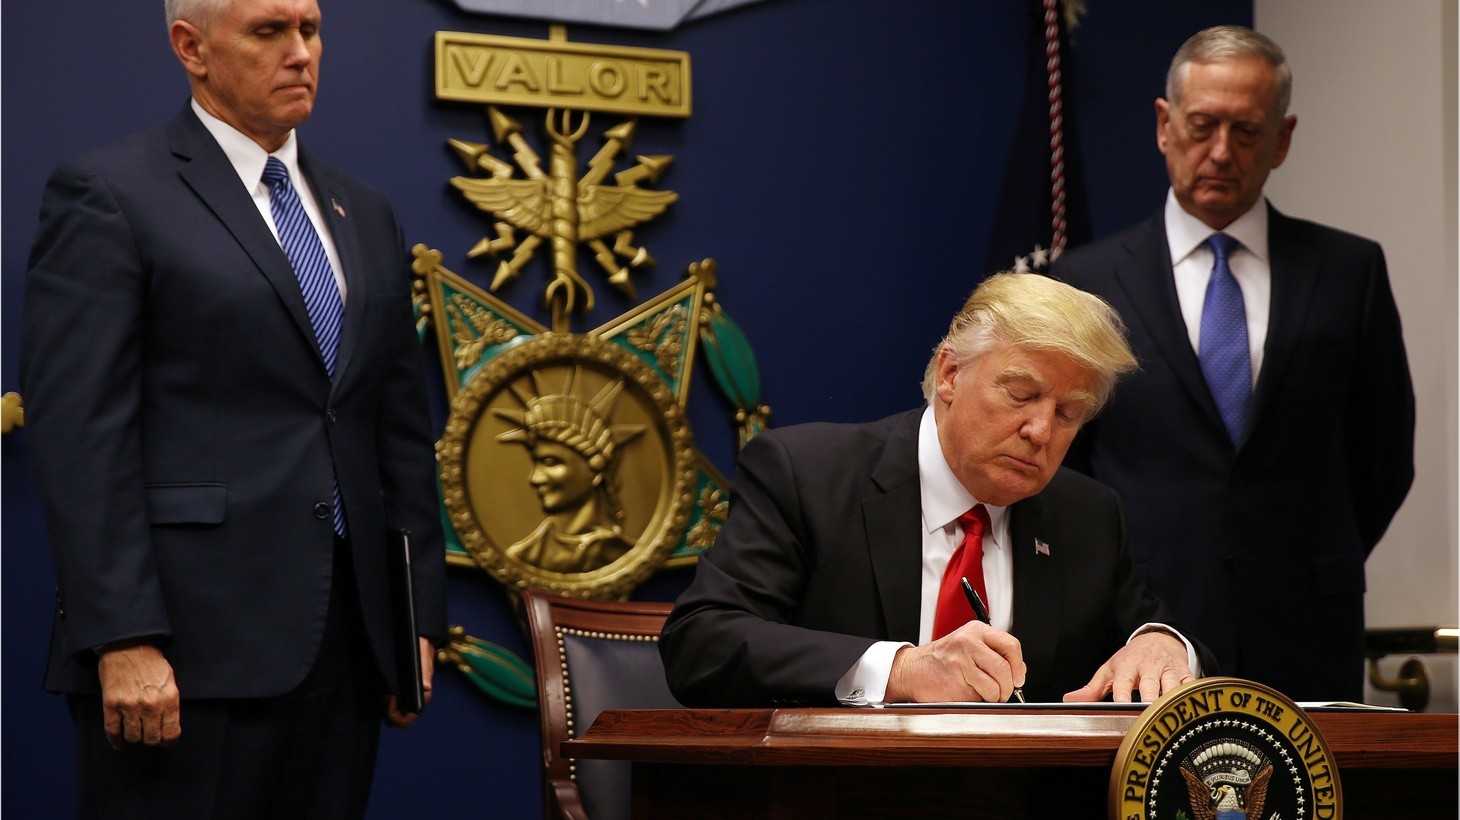 President Donald Trump's revised travel ban says that for 90 days there will be no new visas issued to people from six Muslim-majority countries. No refugees from any country will be allowed into the US for 120 days. What will happen to refugees who have spent years trying to win asylum?